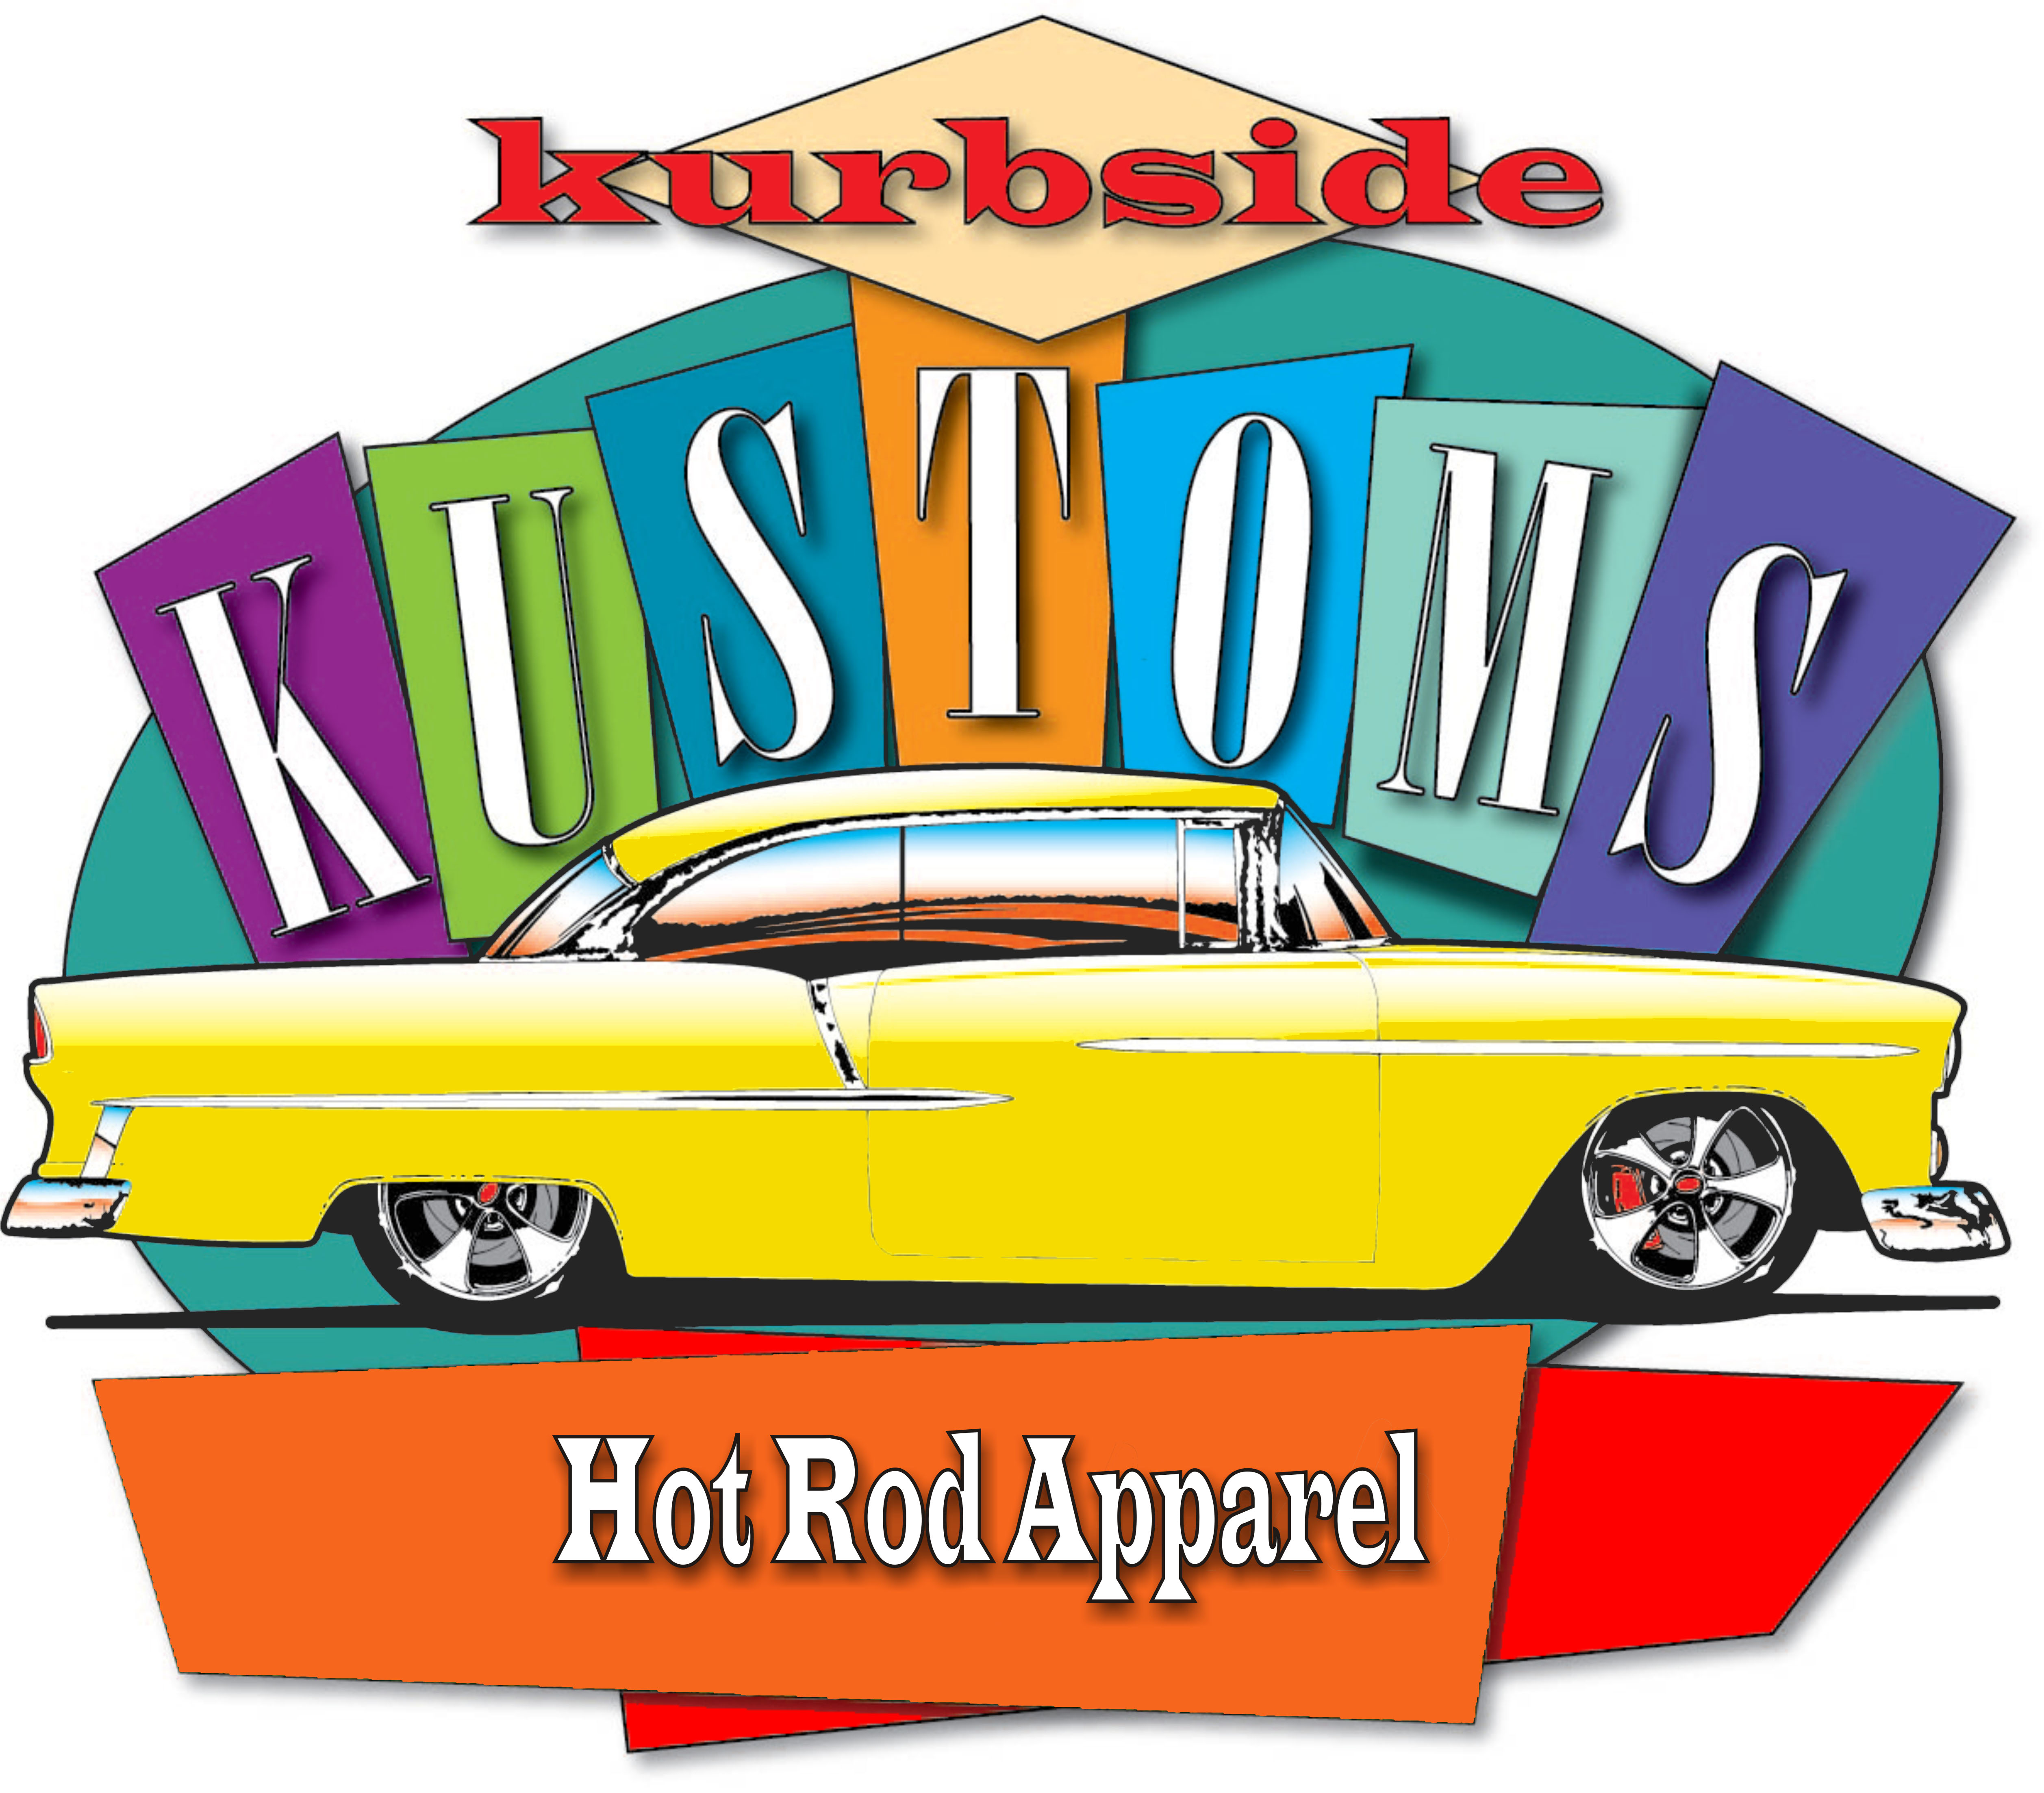 Kurbside Kustoms Hot Rod Apparel